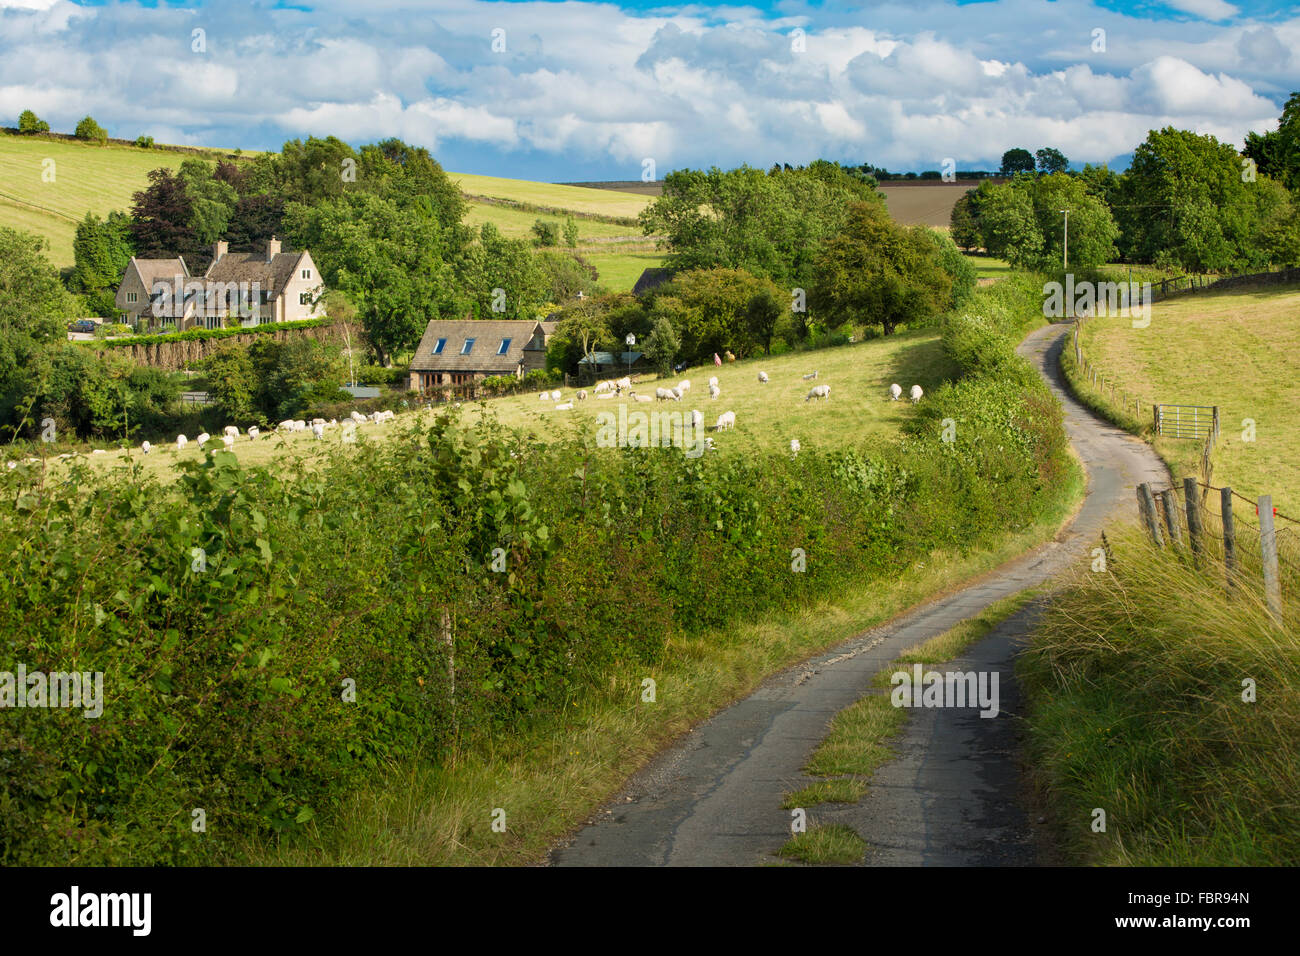 Cottages and countryside near Snowshill,  Gloucestershire, England, UK - Stock Image